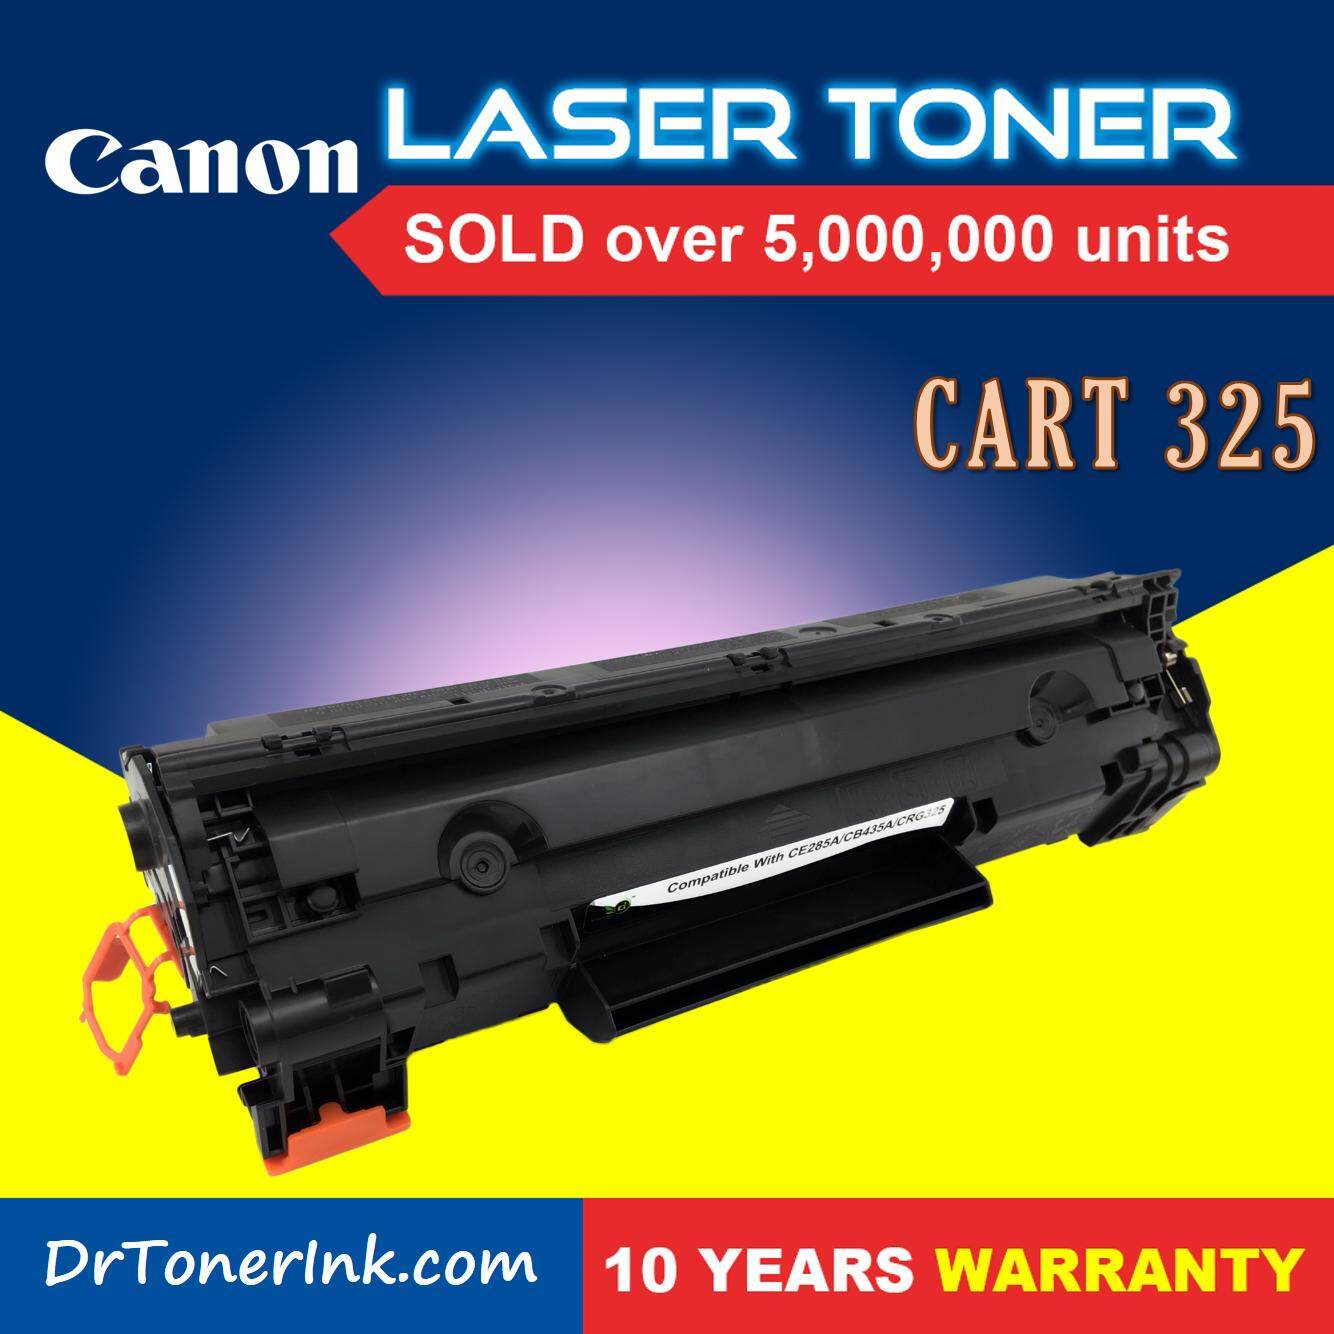 Canon Laser Toners For The Best Prices In Malaysia Upper Red Premium Ir 5000 Oem Compatible Toner Drtoner Cart 325 Mono Black Shot Lbp6000